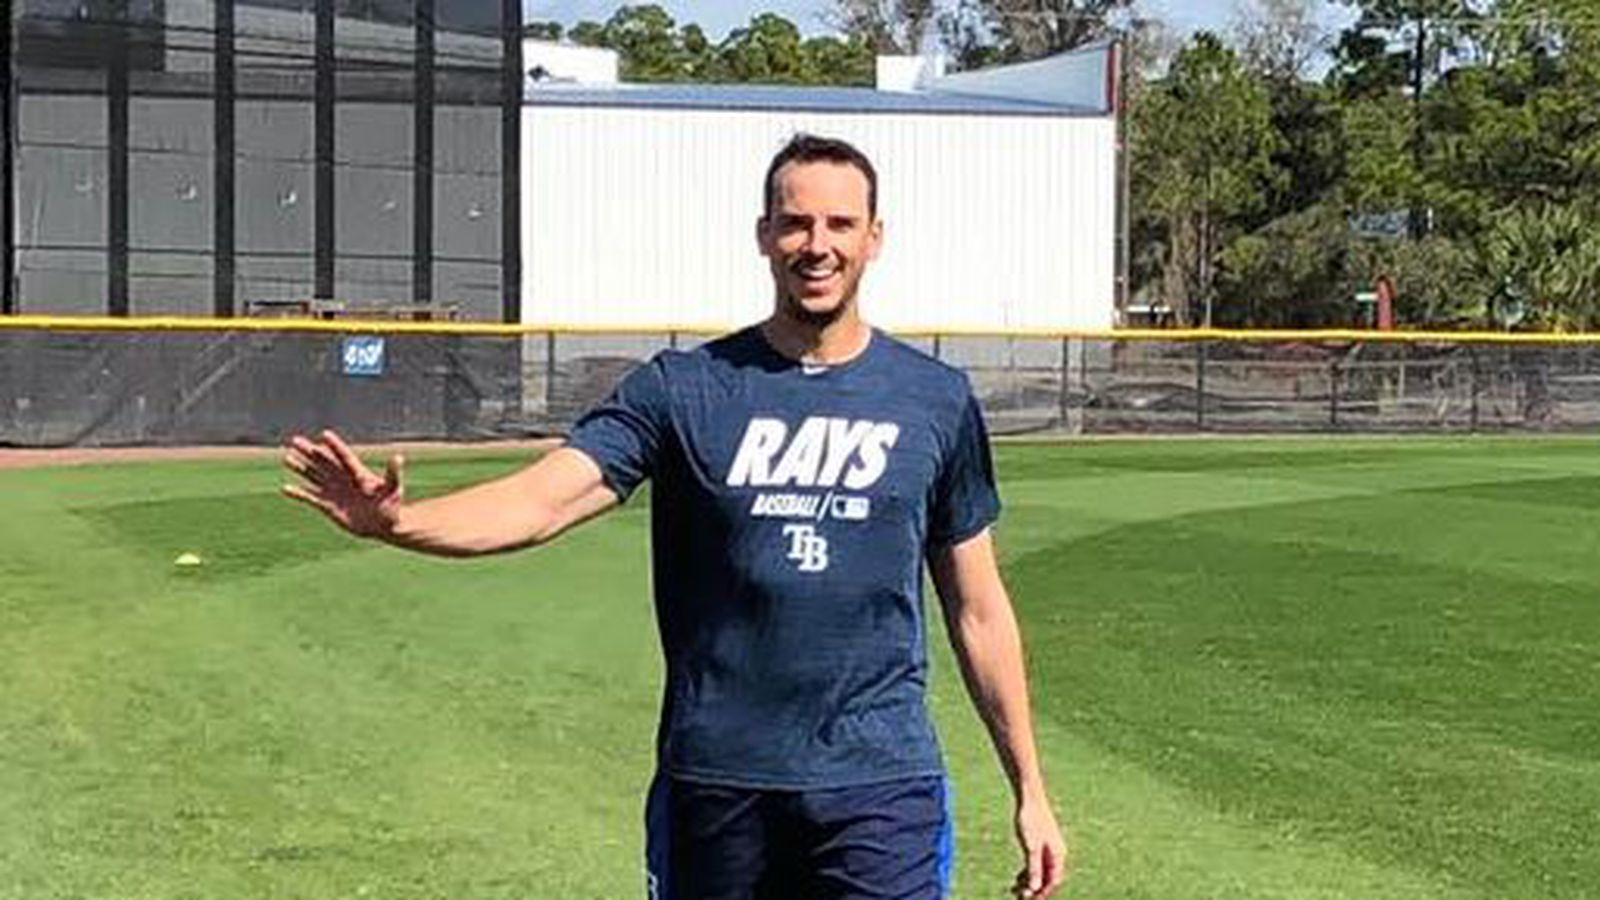 did you hear this one about new rays pitcher charlie morton rays pitcher charlie morton